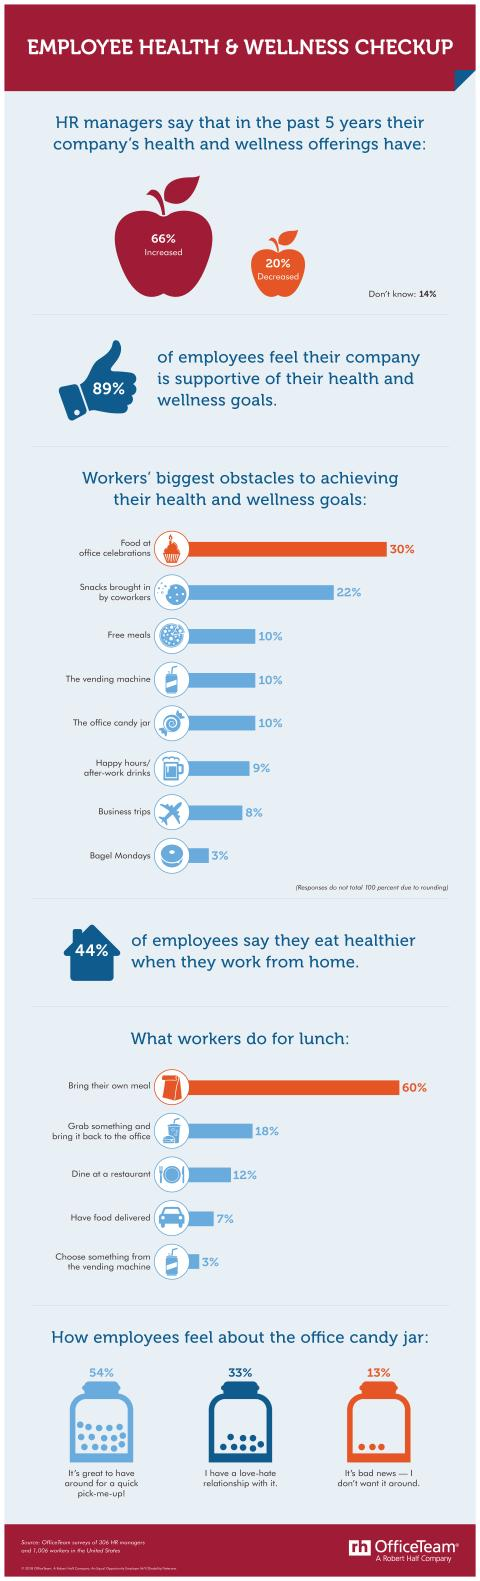 An infographic showing the results of an OfficeTeam survey about health and wellness offerings at companies